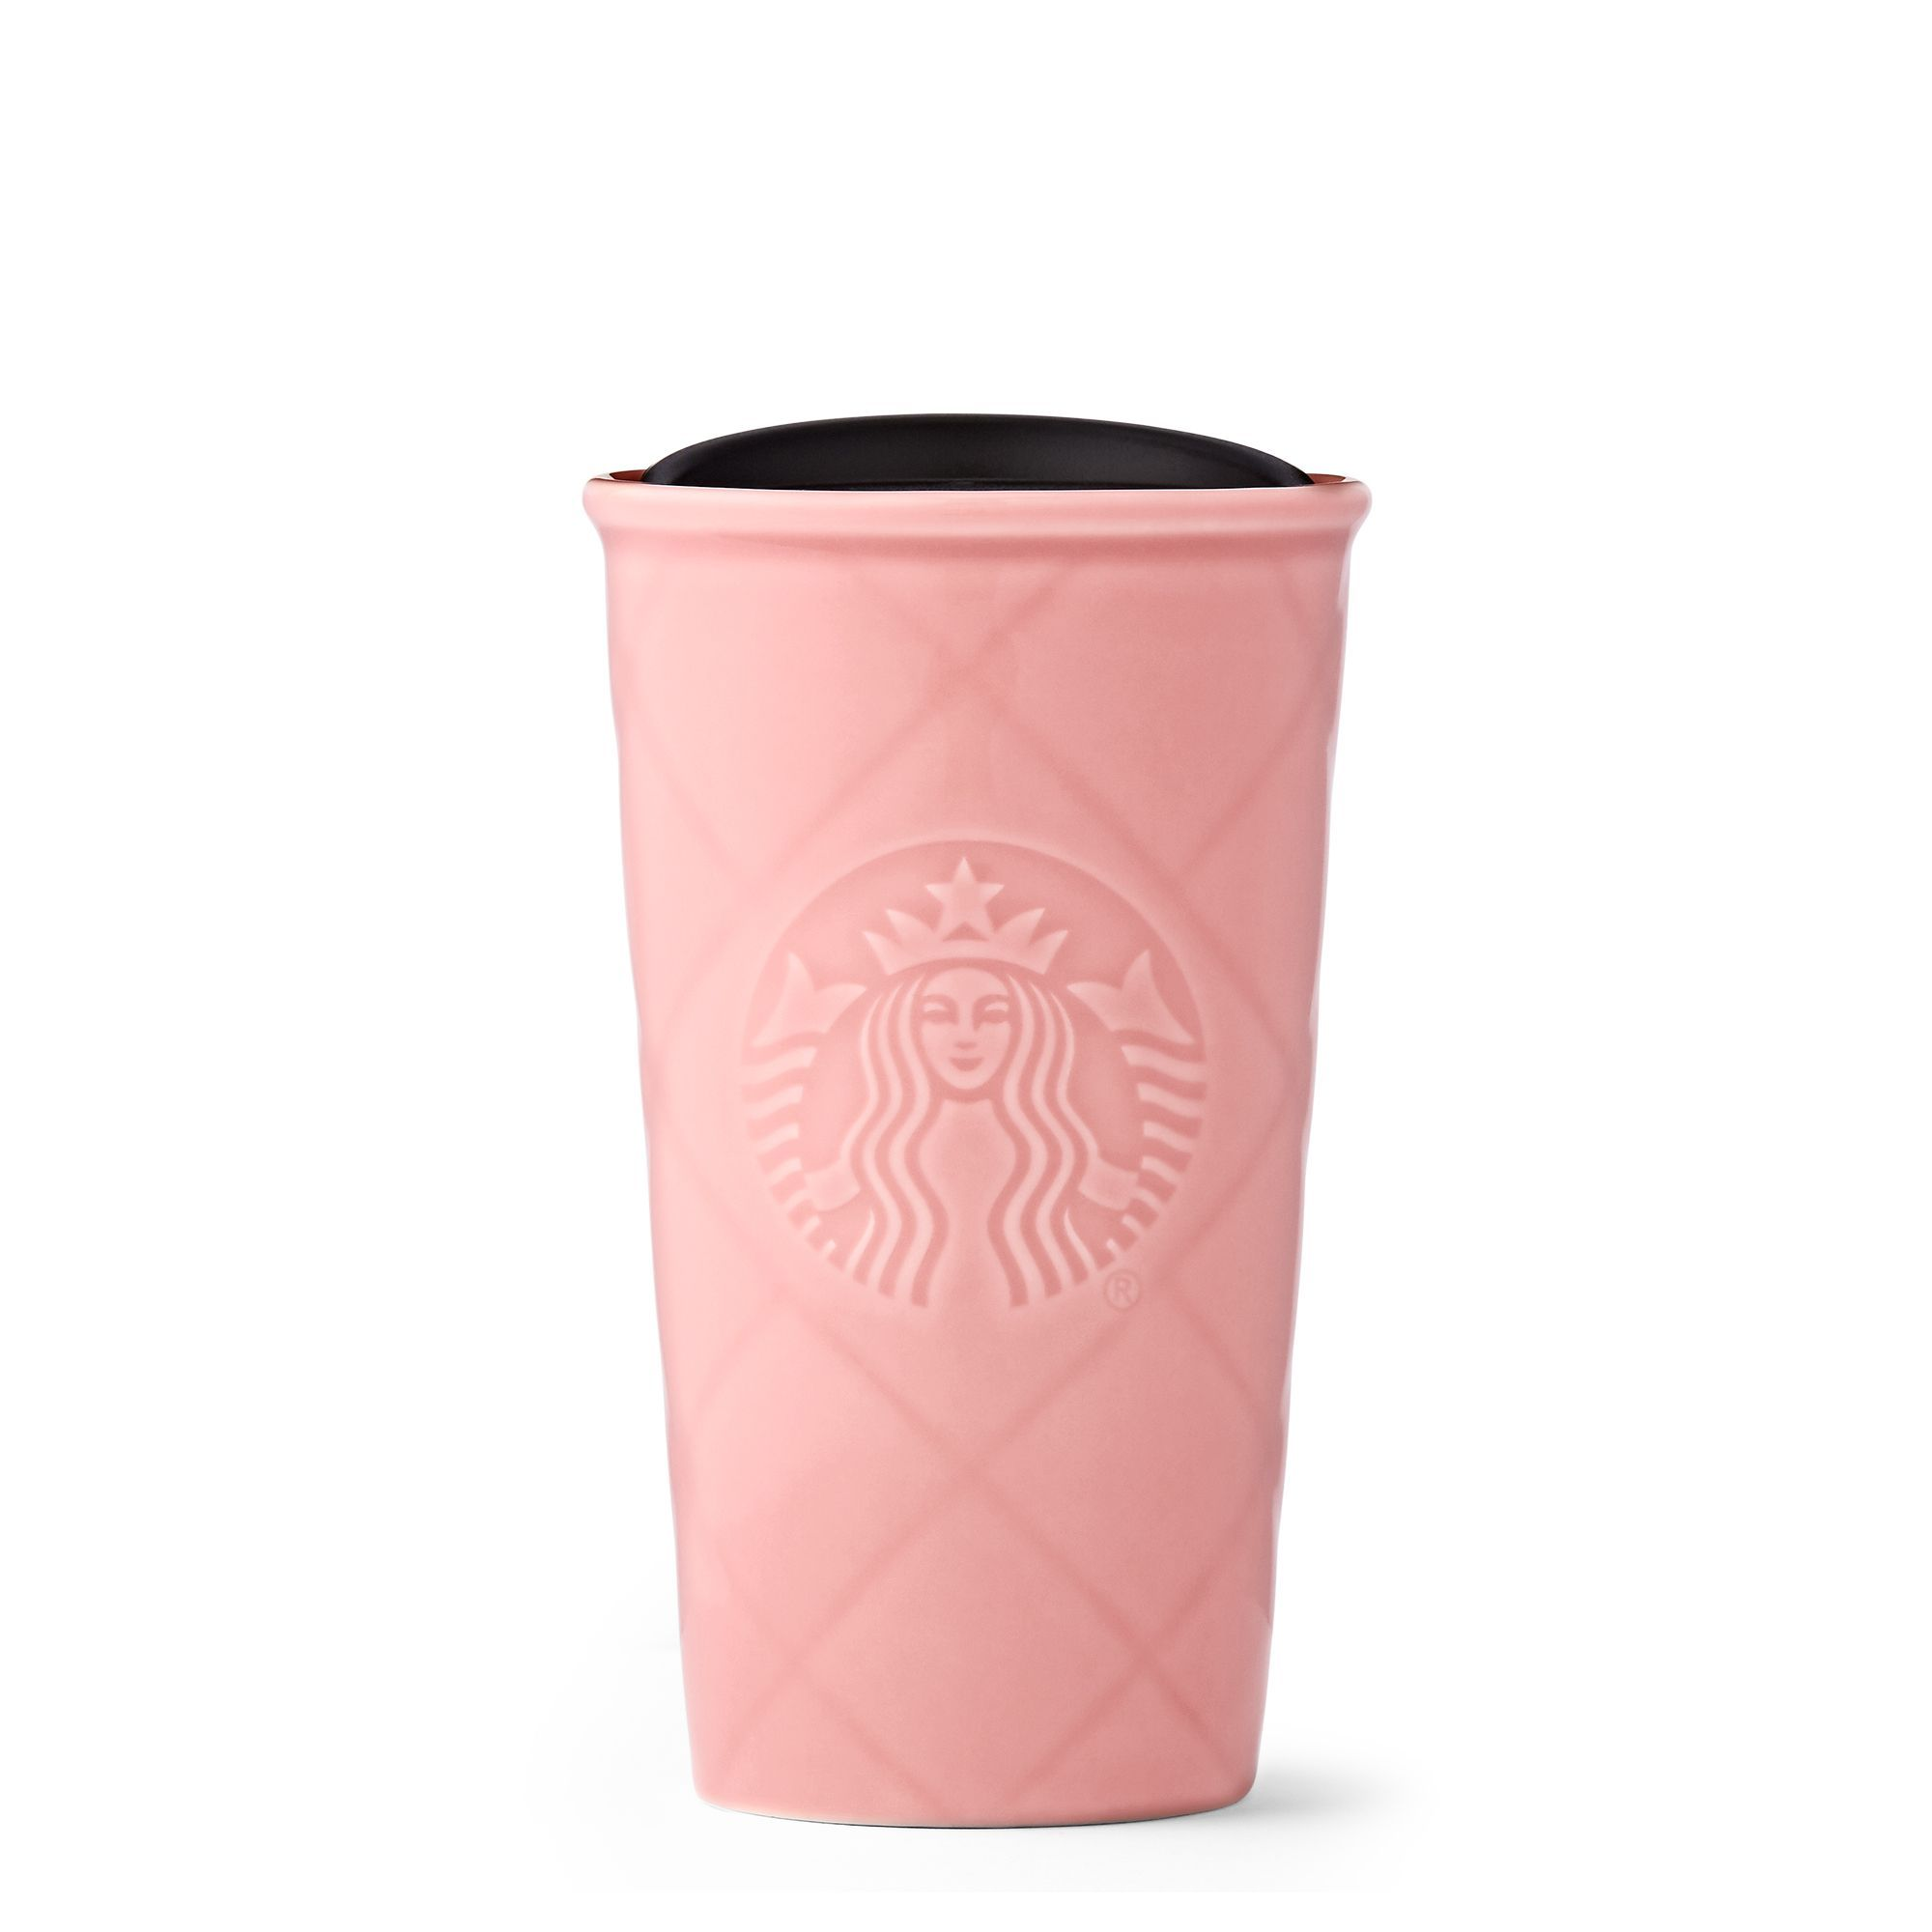 You Can Do All Your Valentine S Day Shopping At Starbucks